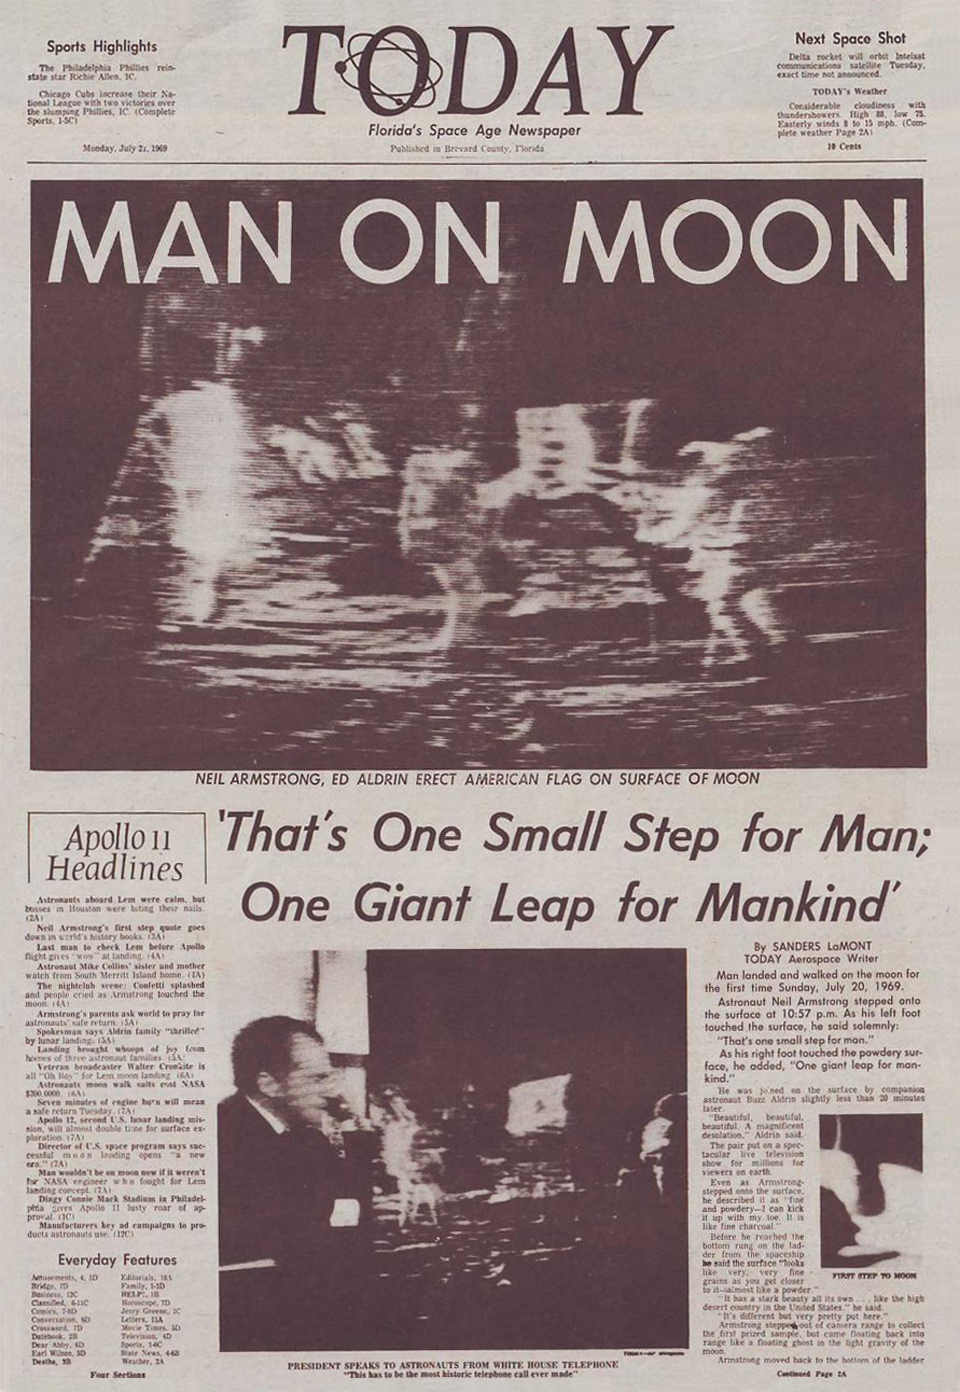 TODAYNEWSPAPER-ManOnTheMOON-960